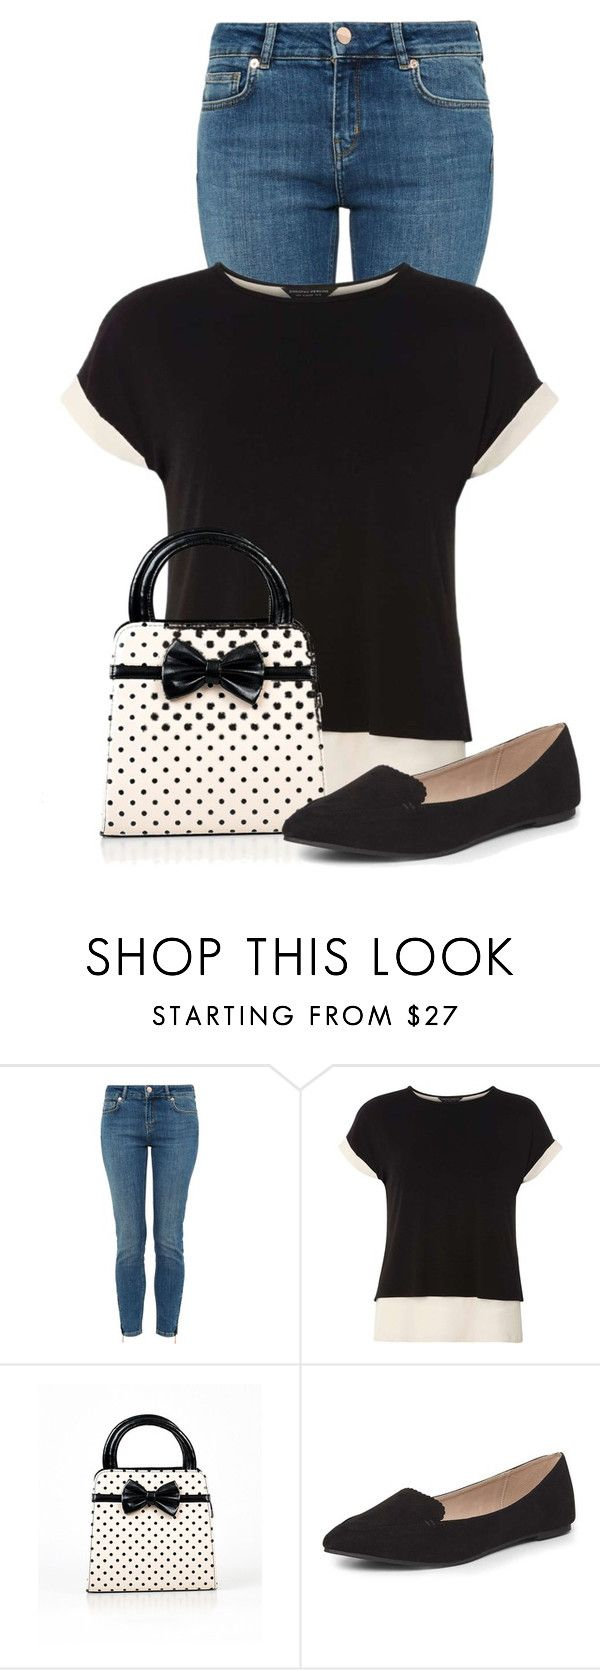 """""""Untitled #22033"""" by nanette-253 ❤ liked on Polyvore featuring Ted Baker and Dorothy Perkins"""